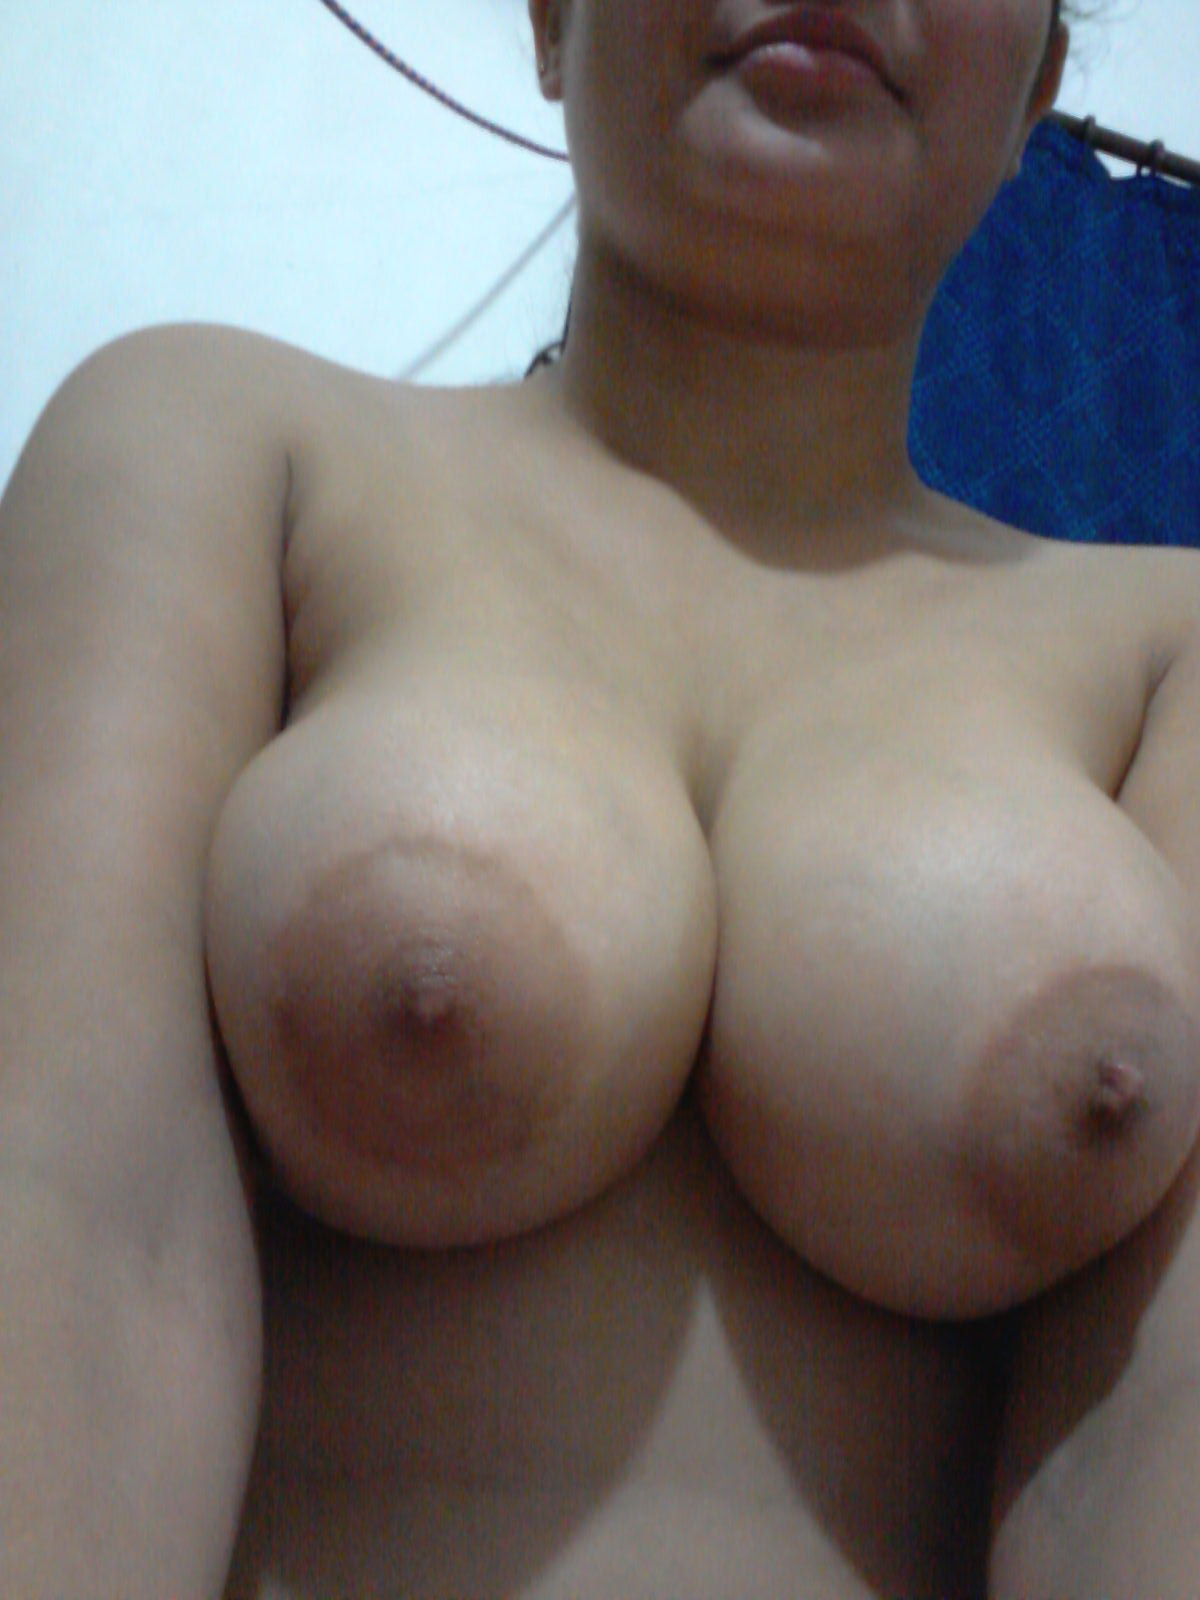 Beautiful Big Boobs On Sexy Indian Girl From Delhi - Real -9964